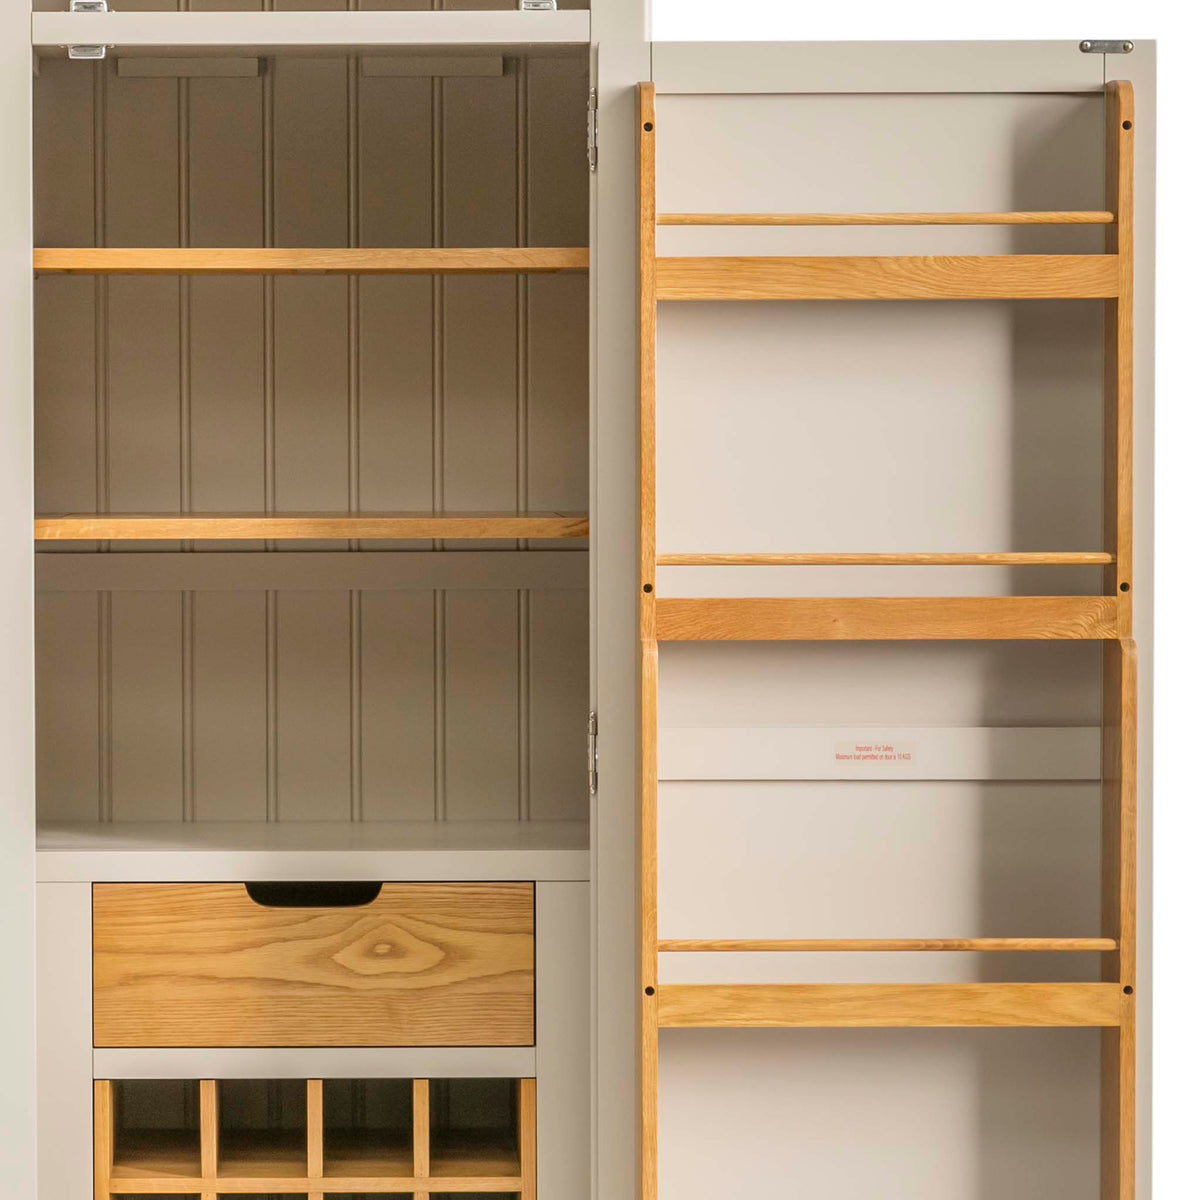 Padstow Stone Grey Small Larder Unit - Close up of inner shelves and spice rack inside door